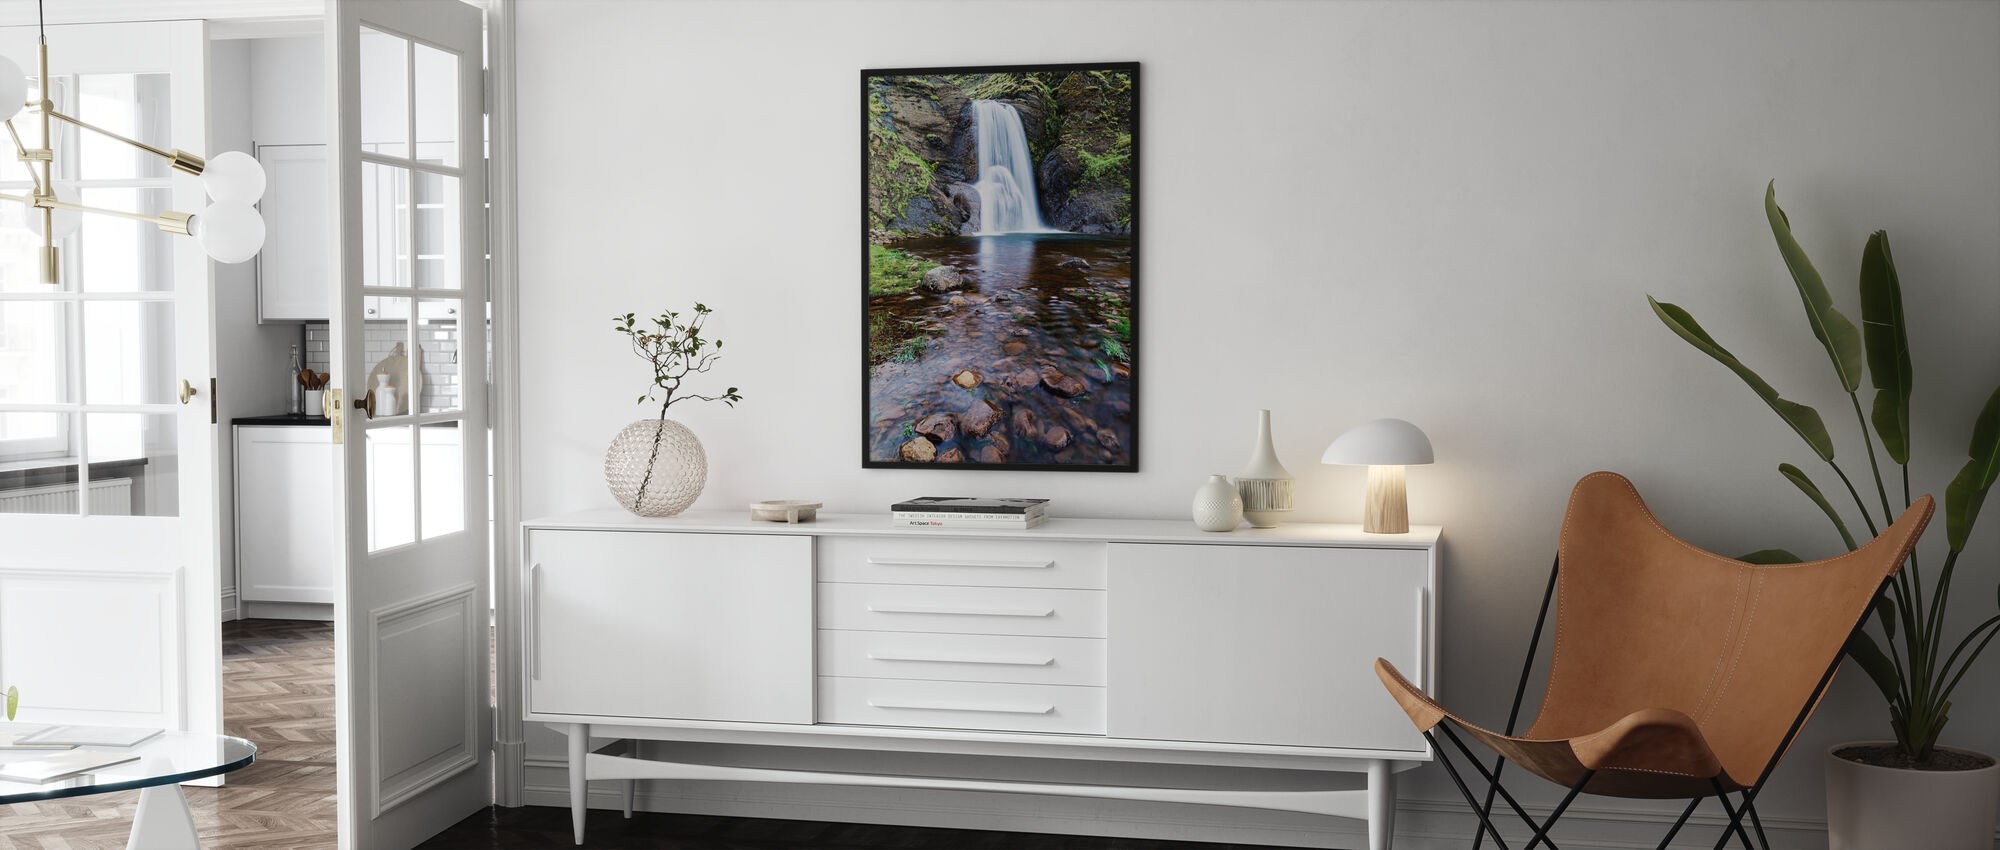 From Fall to Stream - Poster - Living Room